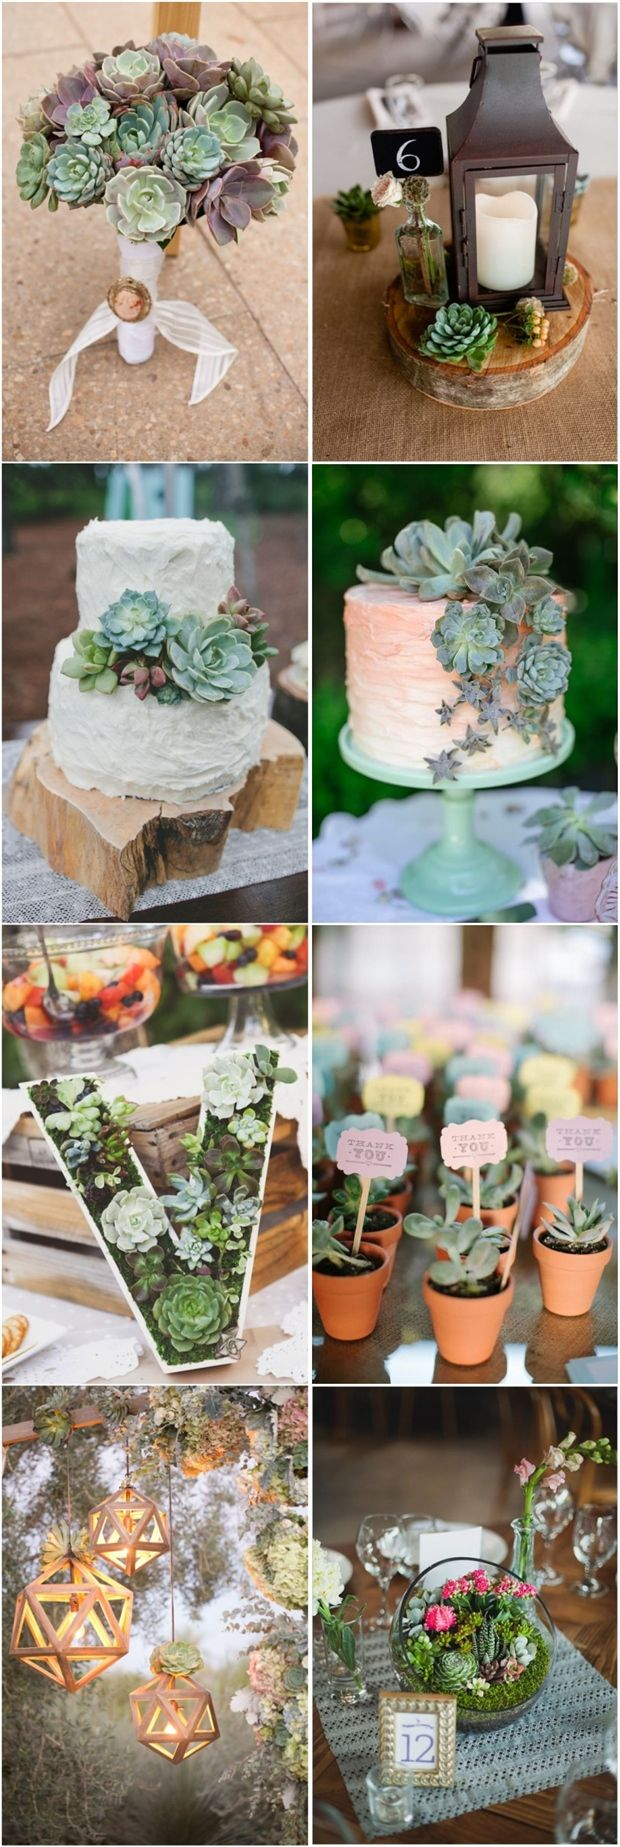 succulent rustic wedding ideas- green country wedding ideas